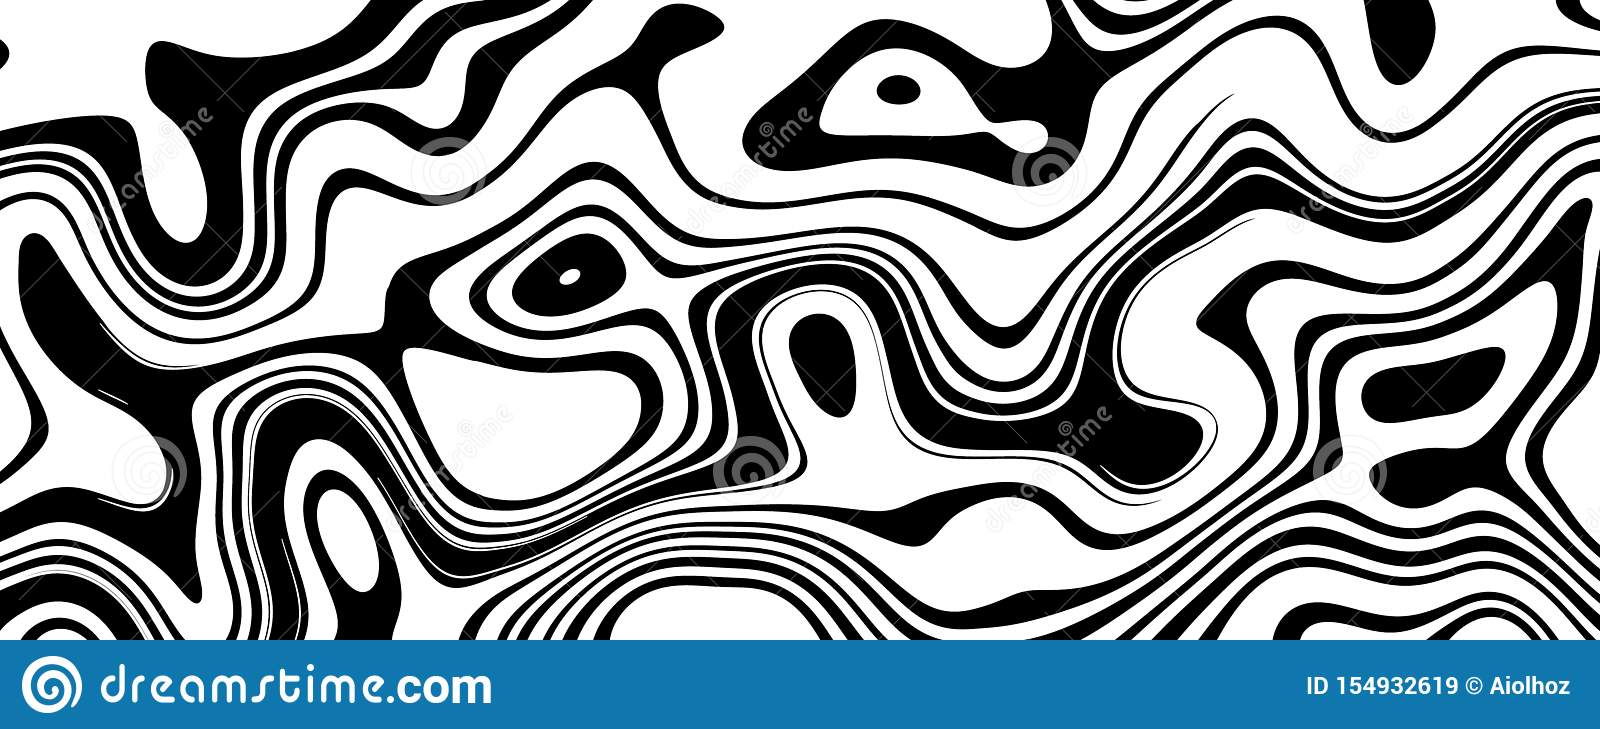 Black and White Wave Background